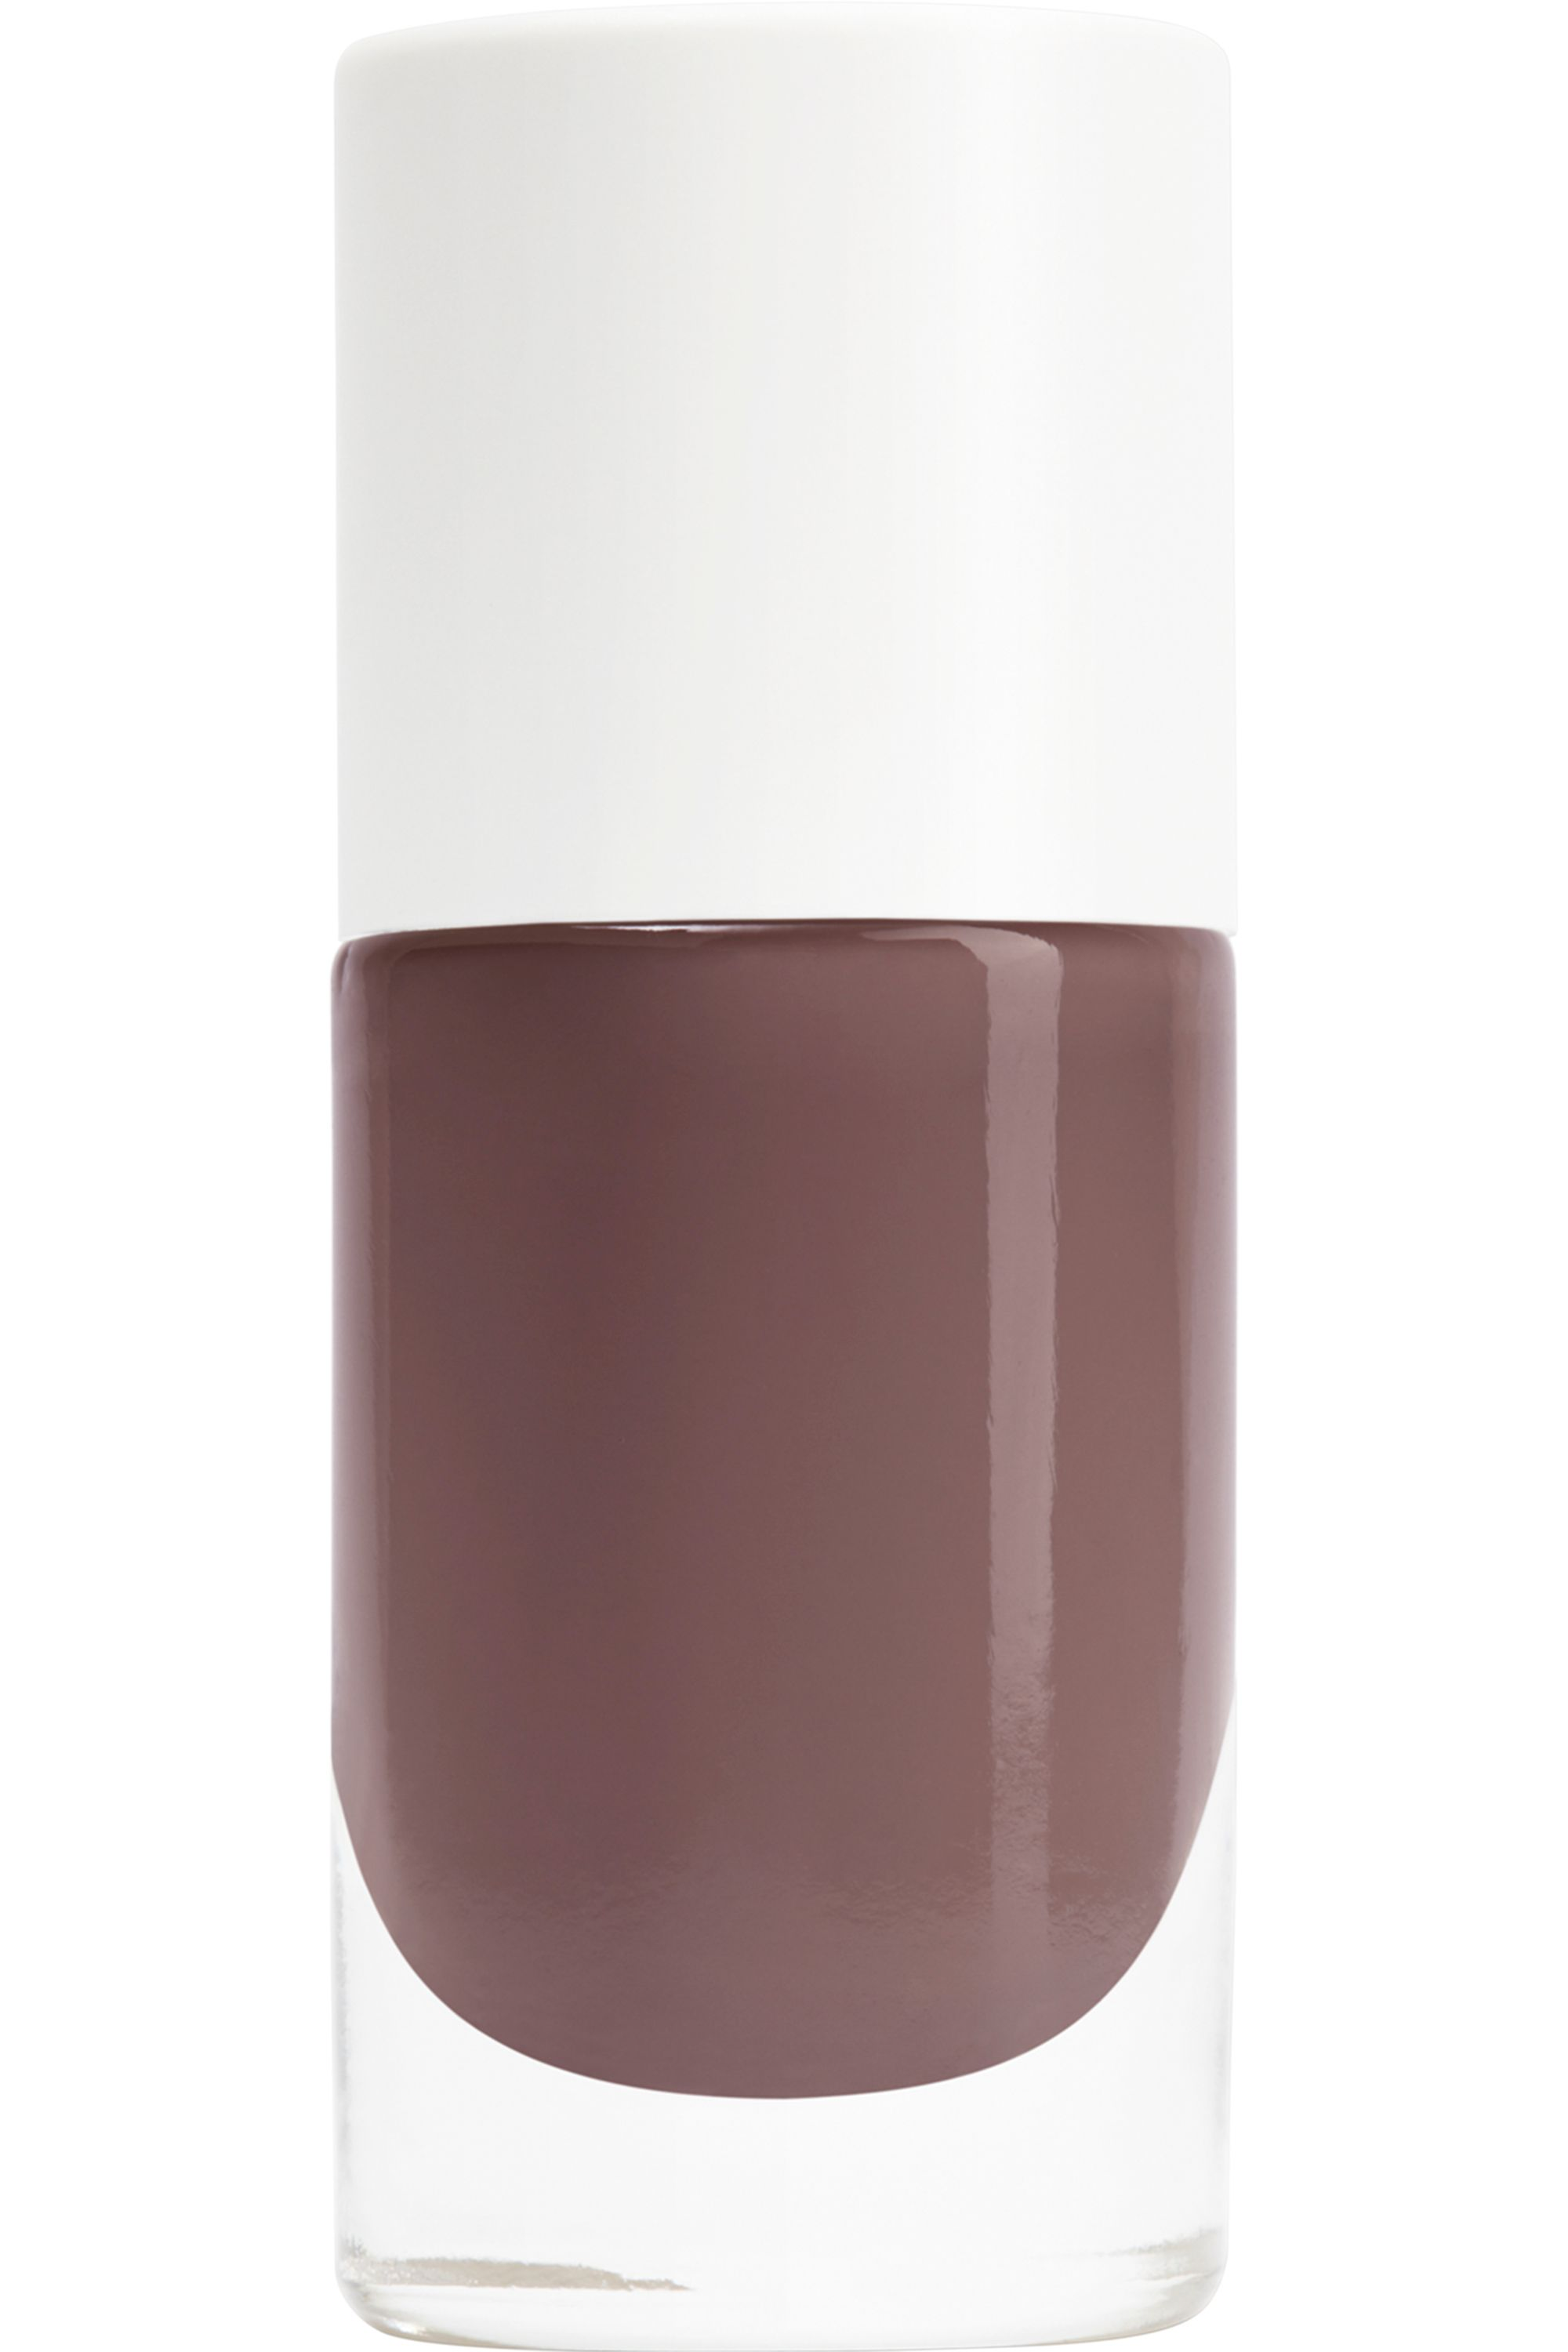 Blissim : Nailmatic - Vernis à ongles Pure Color - Pure Color Alaia